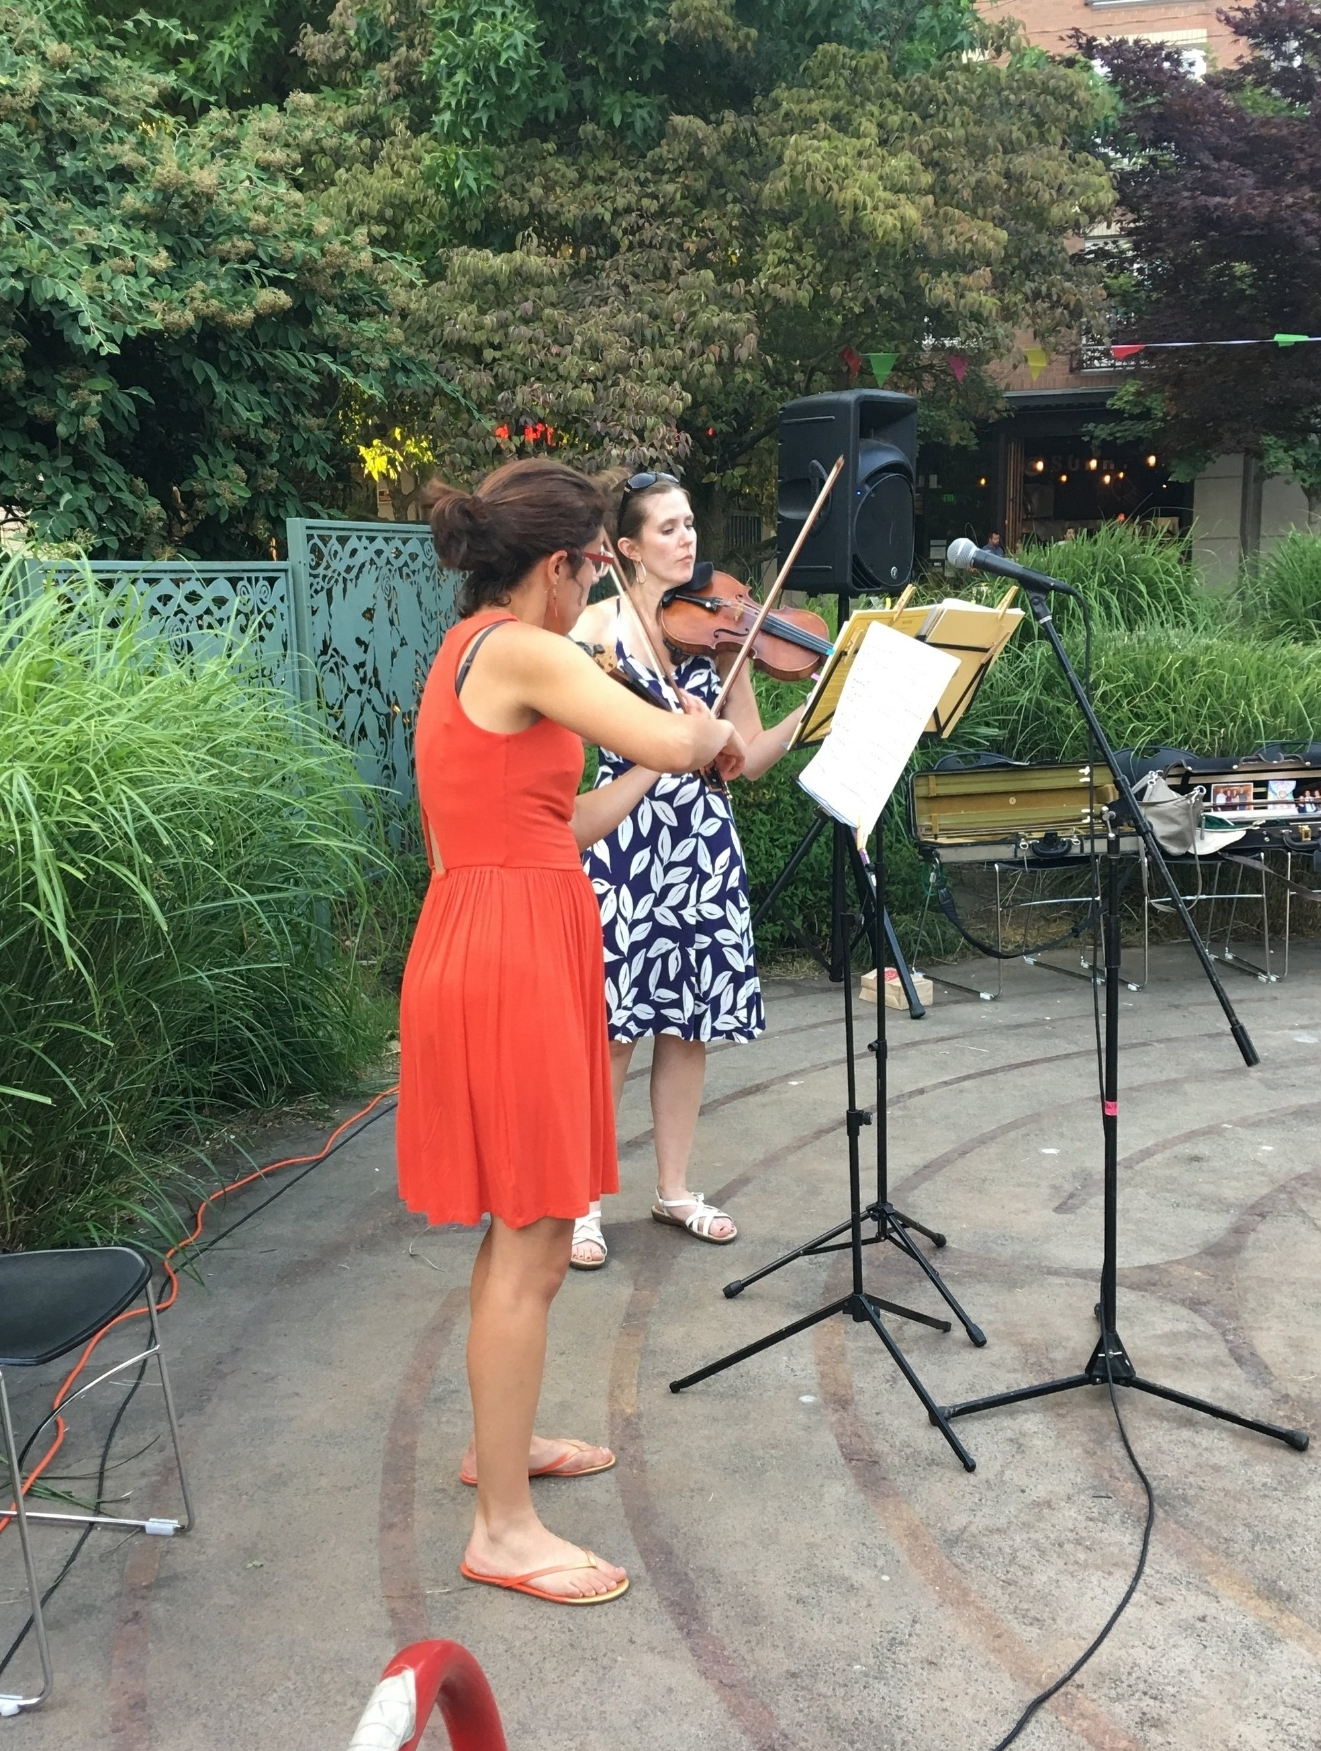 UACC Events - August 1, 2017: Night Out Seattle with music & activities at St. Paul's Episcopal ChurchCeremonial bill signing for uptown rezone & Cultural District designationUptown Rezone celebration at Queen Anne Beer HallOctober 28, 2017: Design Open House for Seattle Center Arena, presented by Oak View Group in partnership with UACC and others